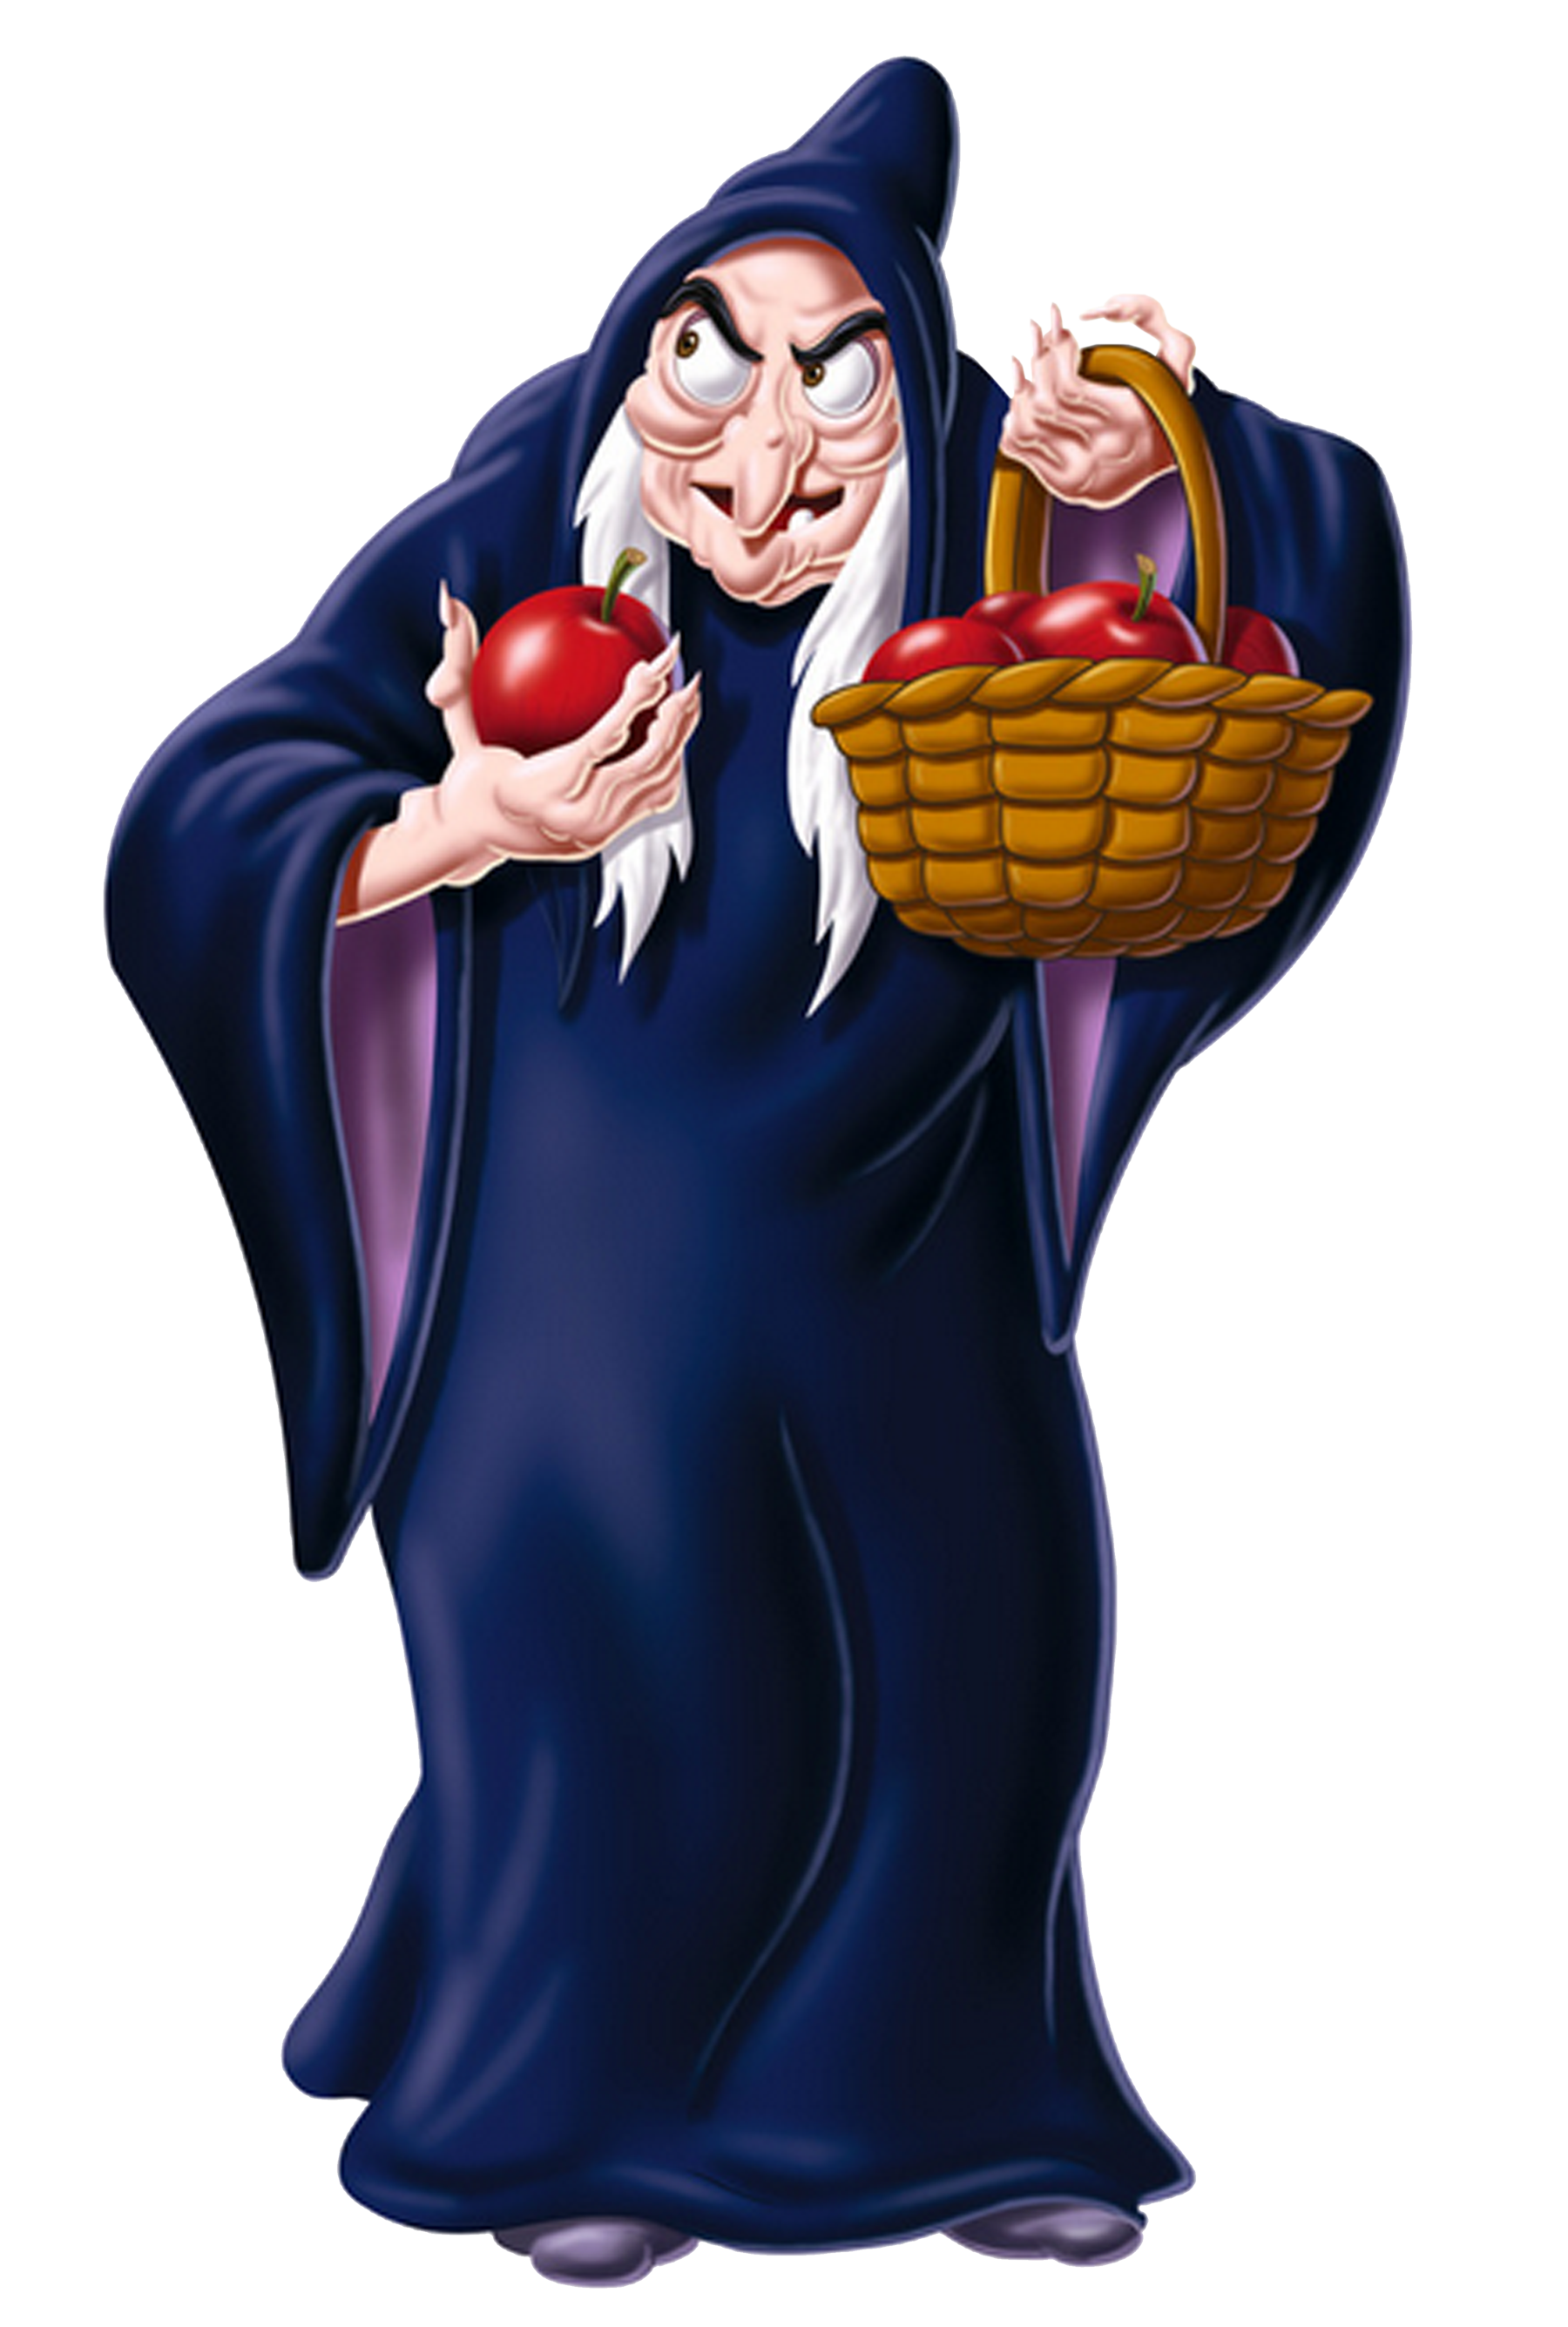 Clipart snow white with apple png freeuse Queen Grimhilde | Villains Wiki | FANDOM powered by Wikia png freeuse